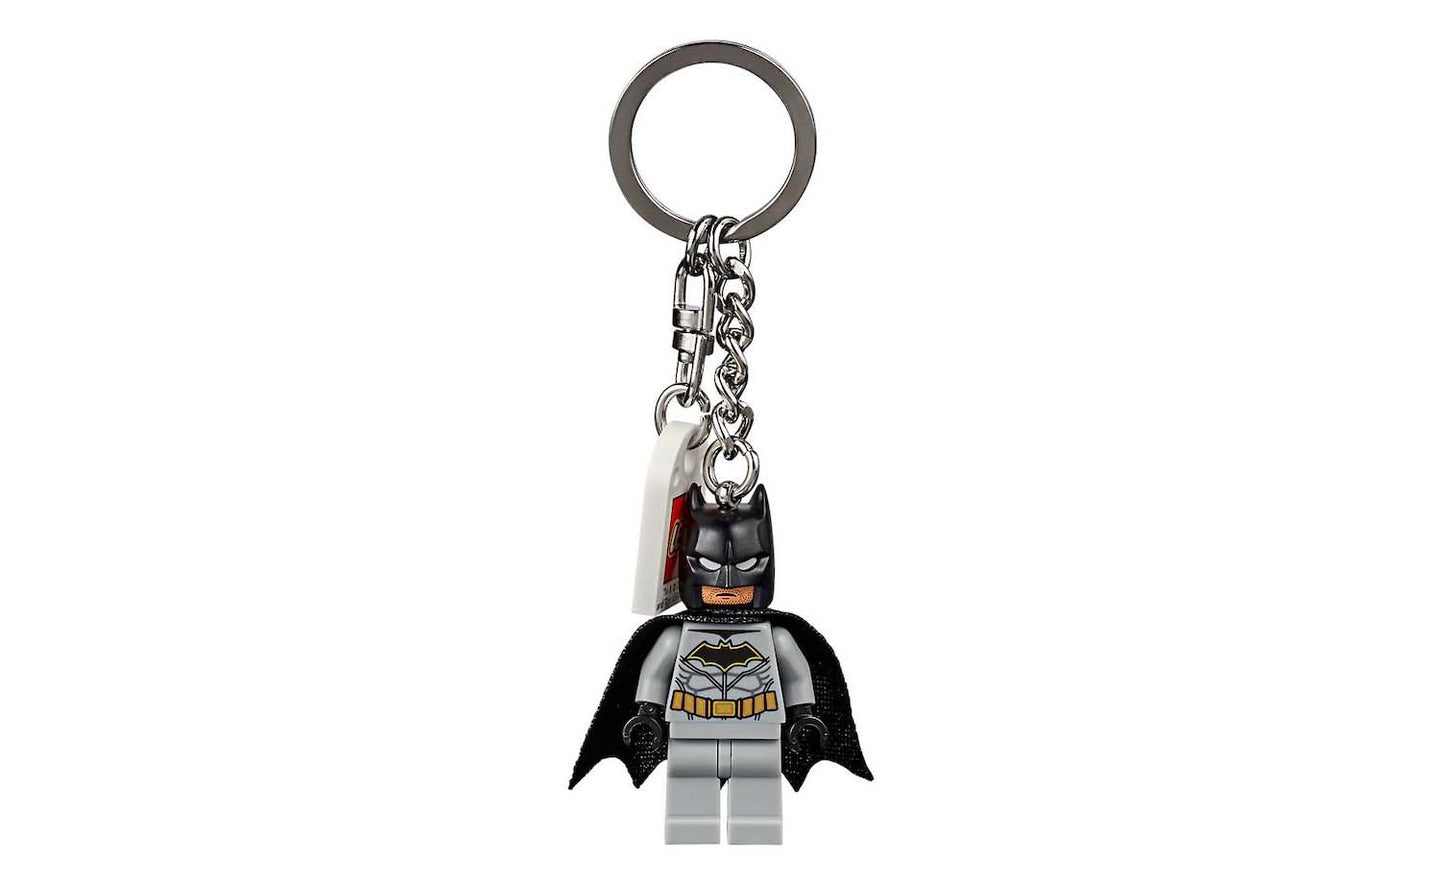 853951 | LEGO® DC Comics™ Super Heroes Batman Key Chain 2